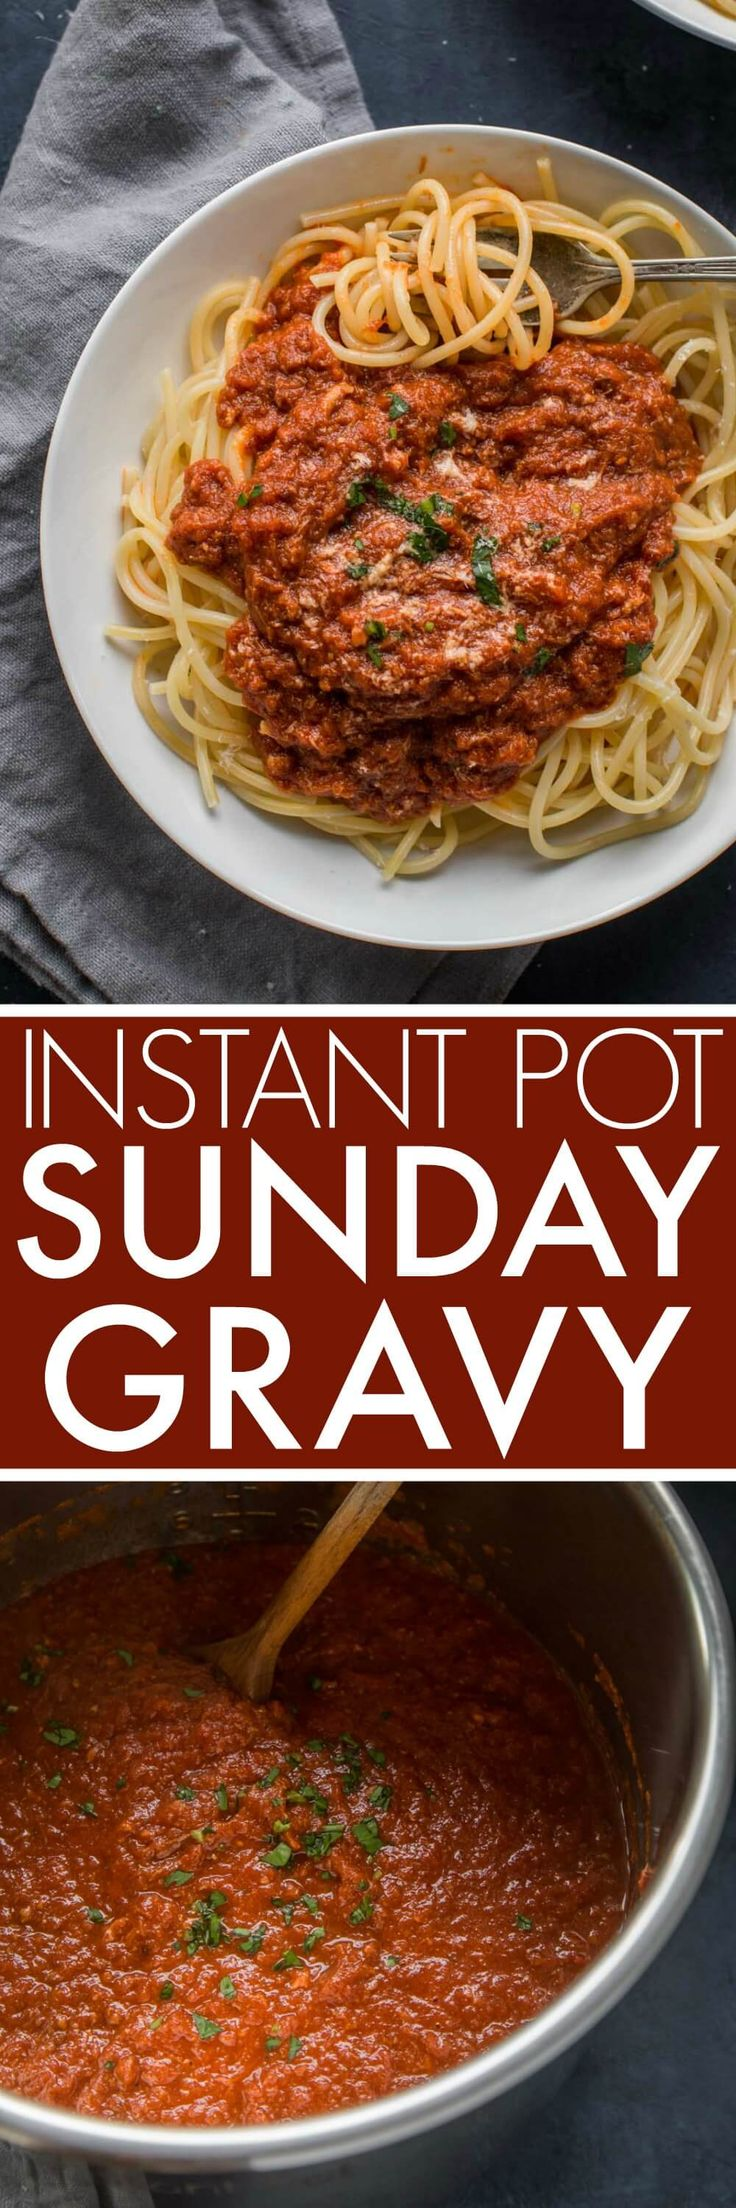 This Instant Pot Sunday Gravy recipe is the perfect shortcut for making my Nana Lamancuso's authentic Italian meat sauce using your electric pressure cooker.